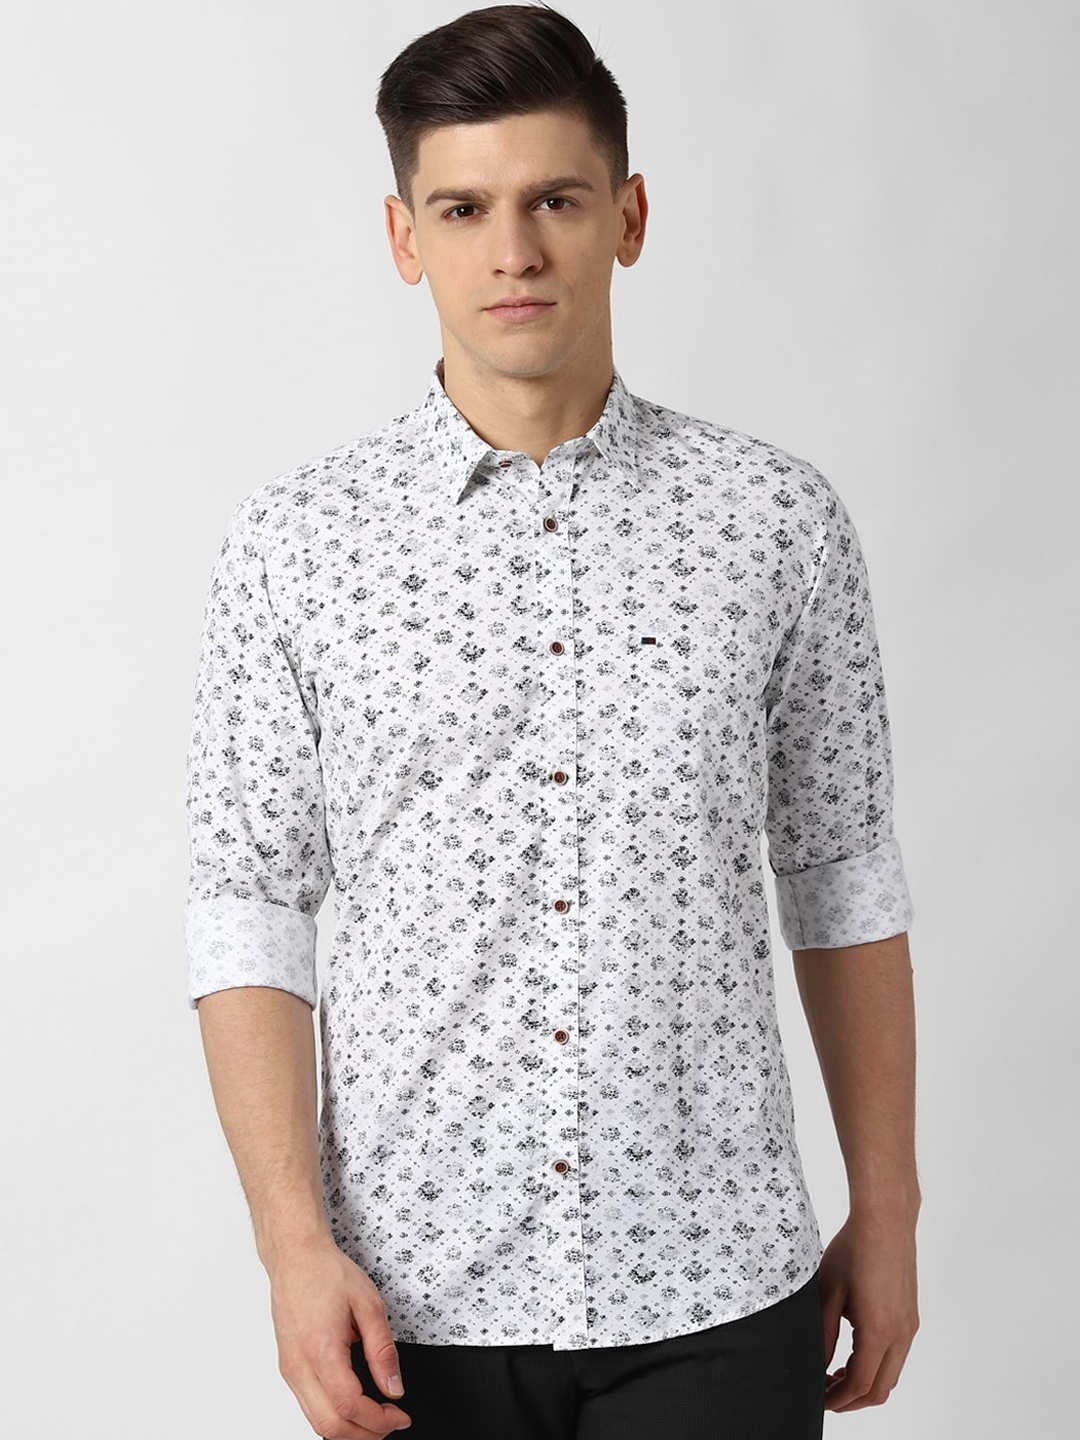 Peter England Casuals Men White Printed Casual Shirt